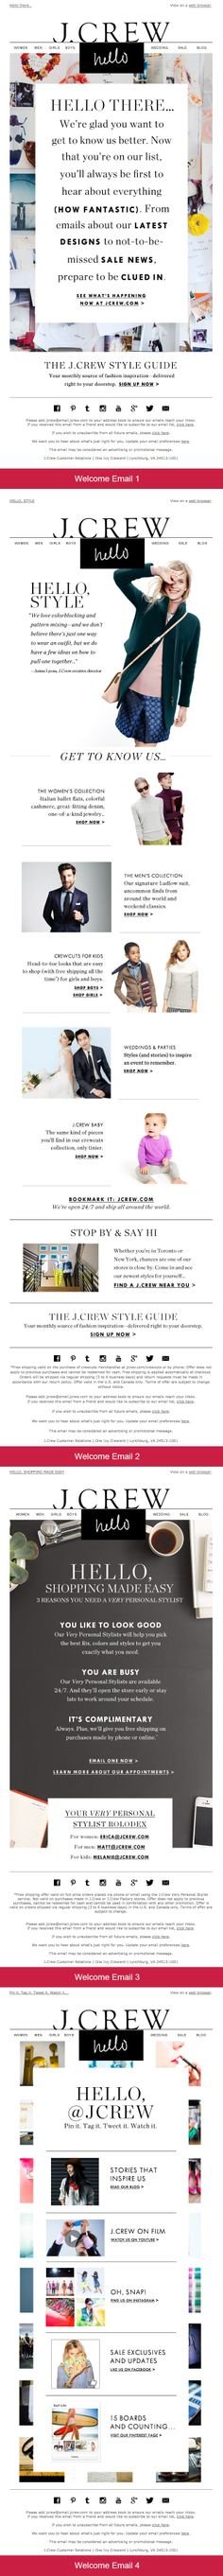 """""""Hello, J.Crew"""" Welcome program. This welcome series (consisting of of four email in total), arrives in your inbox every two days after initial sign-up. Each email is packed with useful information and a reinforces the same, consistent """"Hello"""" theme - yet each """"hello"""" message is uniquely creative to their product offering. This very cleverly continues that """"welcoming"""" feeling with some pretty brilliant marketing -- ultimately creating a most impressive welcome experience."""